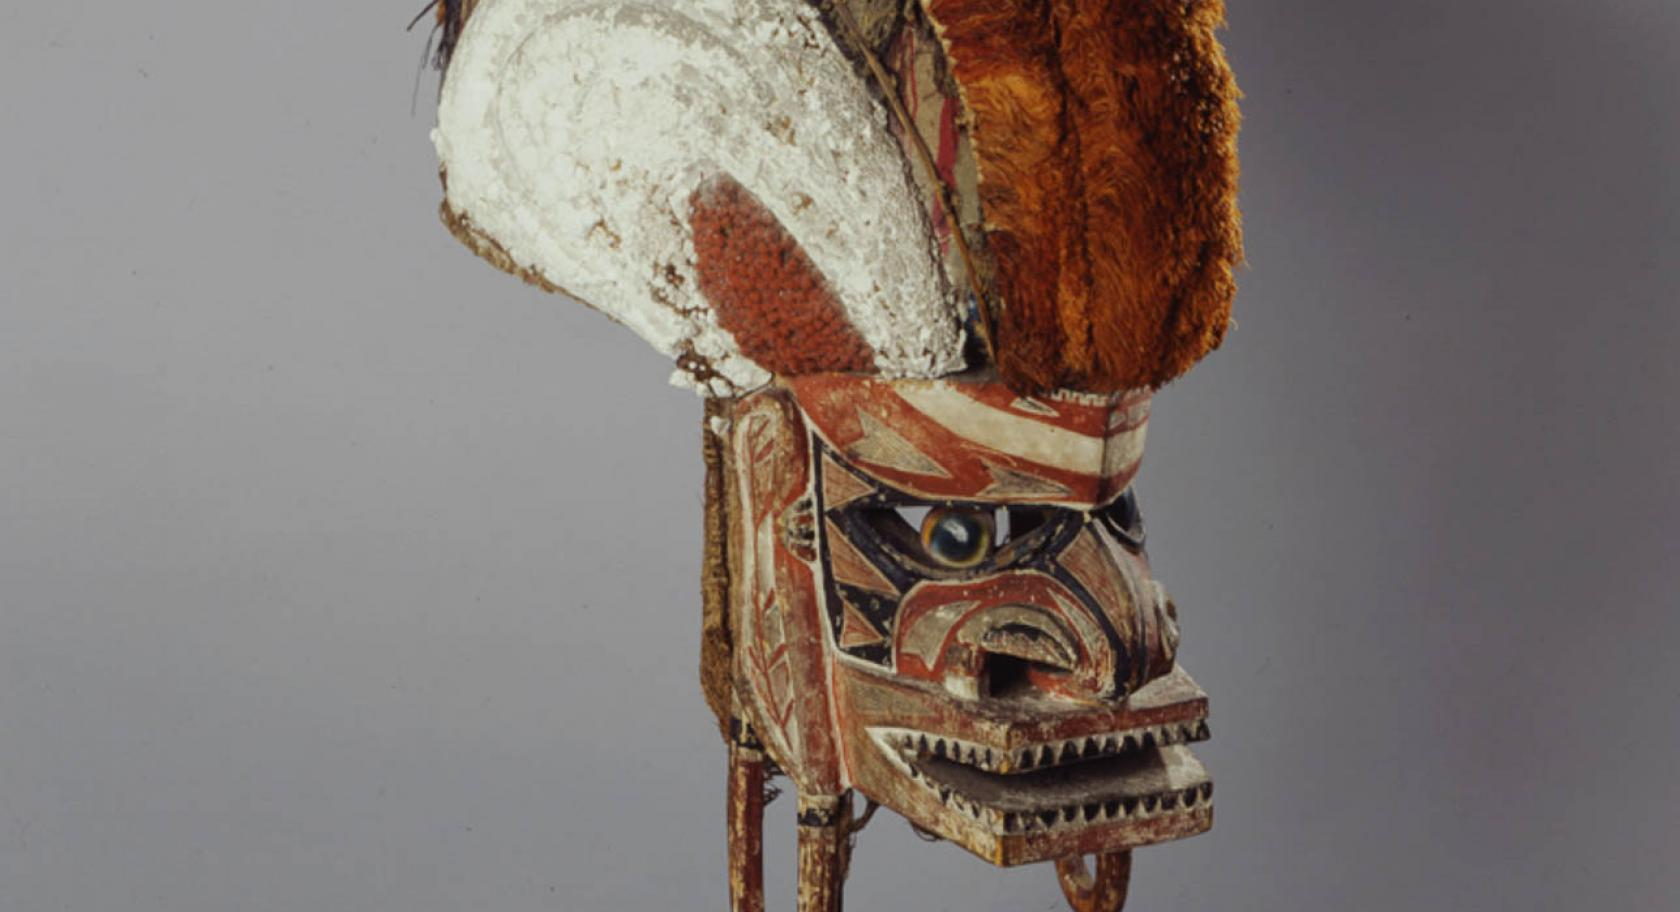 Unidentified artist, New Ireland, Papua New Guinea, Tatanua Mask, twentieth century, wood, fiber, prickly fruit, lime, pigment, Ulfert Wilke Collection, purchased with funds from Friends of the Art Museum, UMFA1983.001.009.